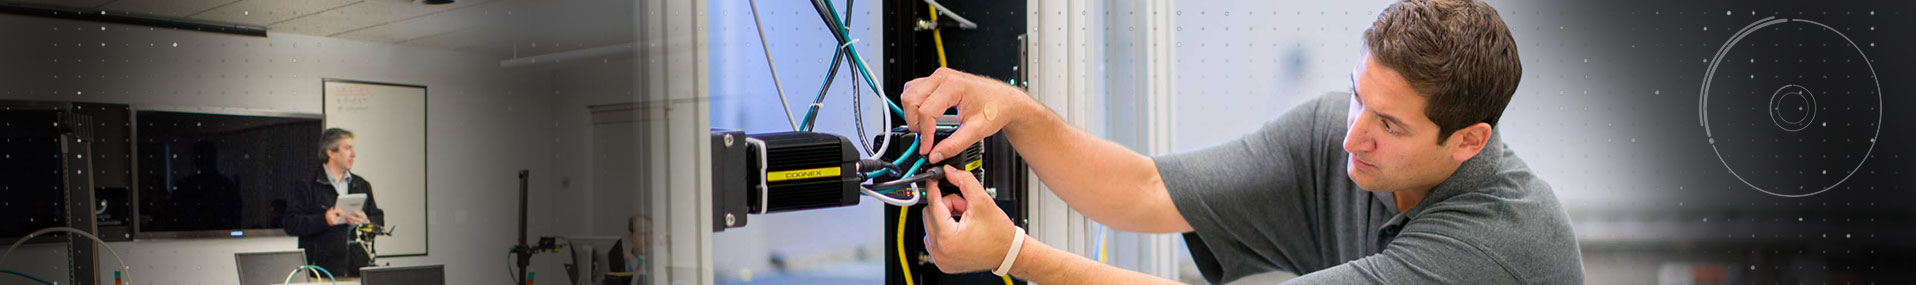 teacher in front of class and service technician adjusting cognex wires